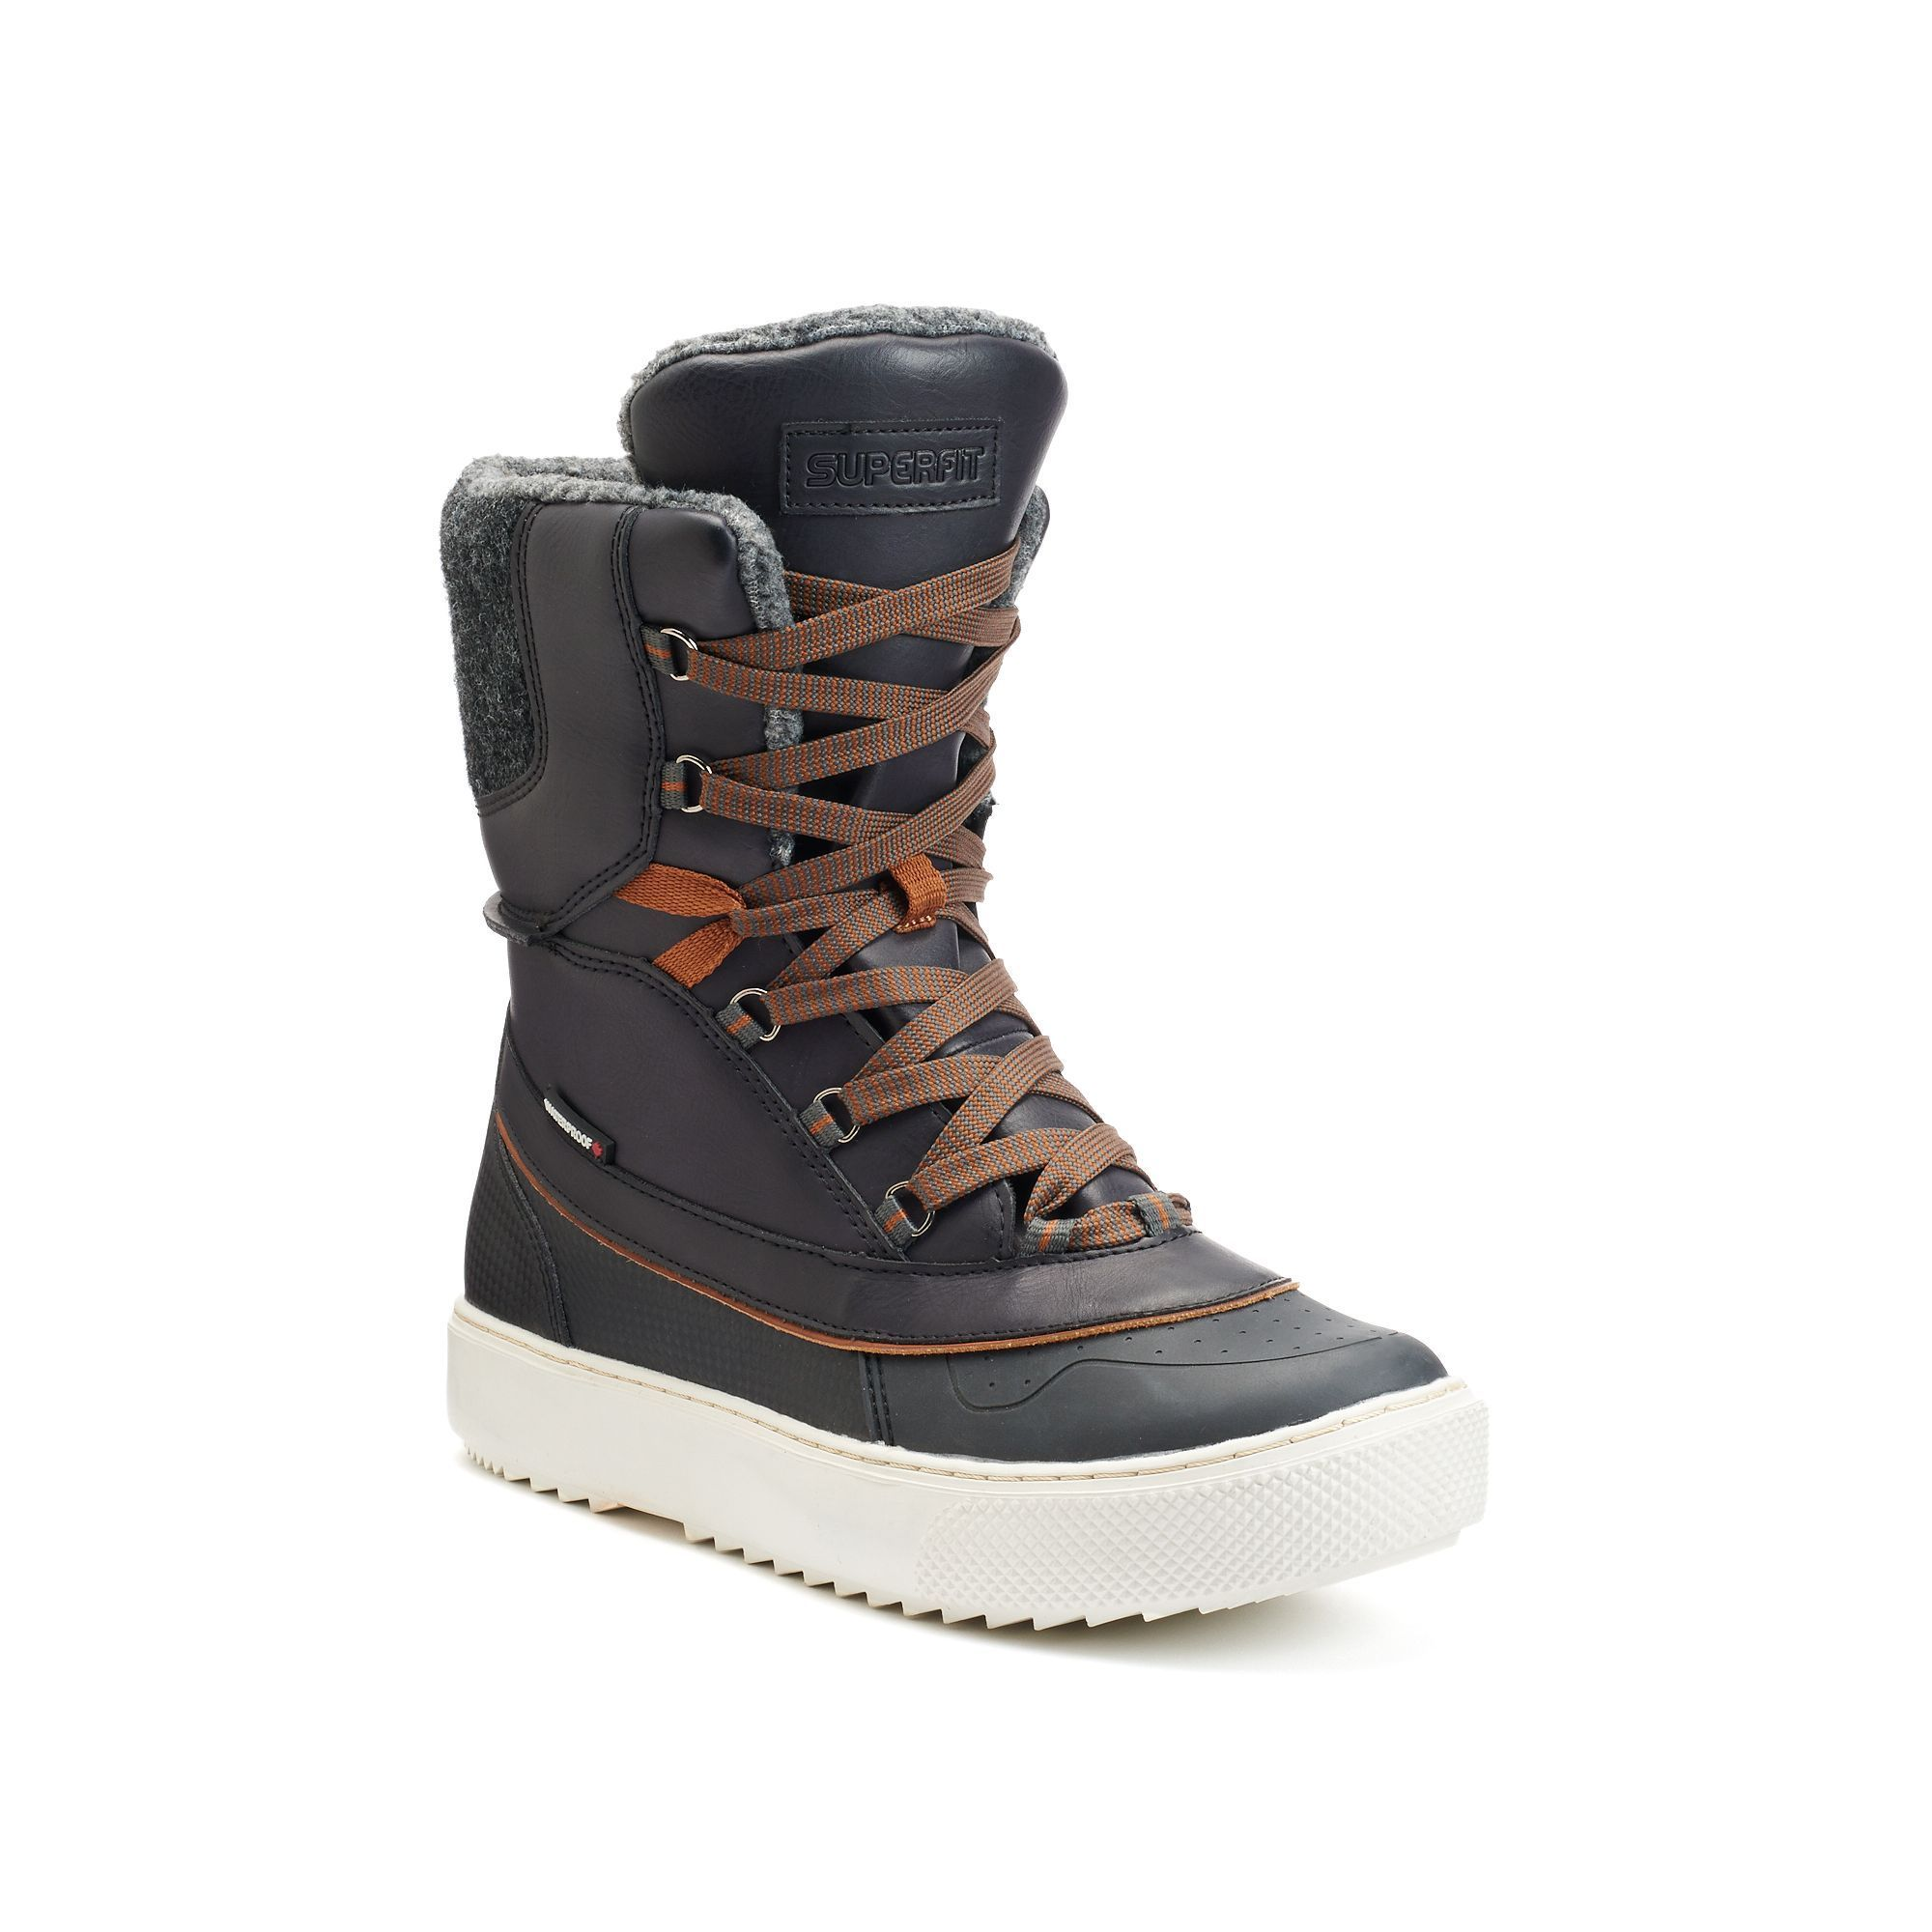 cheap price in China Superfit Madoc Men's ... Waterproof Winter Boots clearance newest buy cheap pay with paypal cheap sale ebay discount under $60 iG64UUxH6